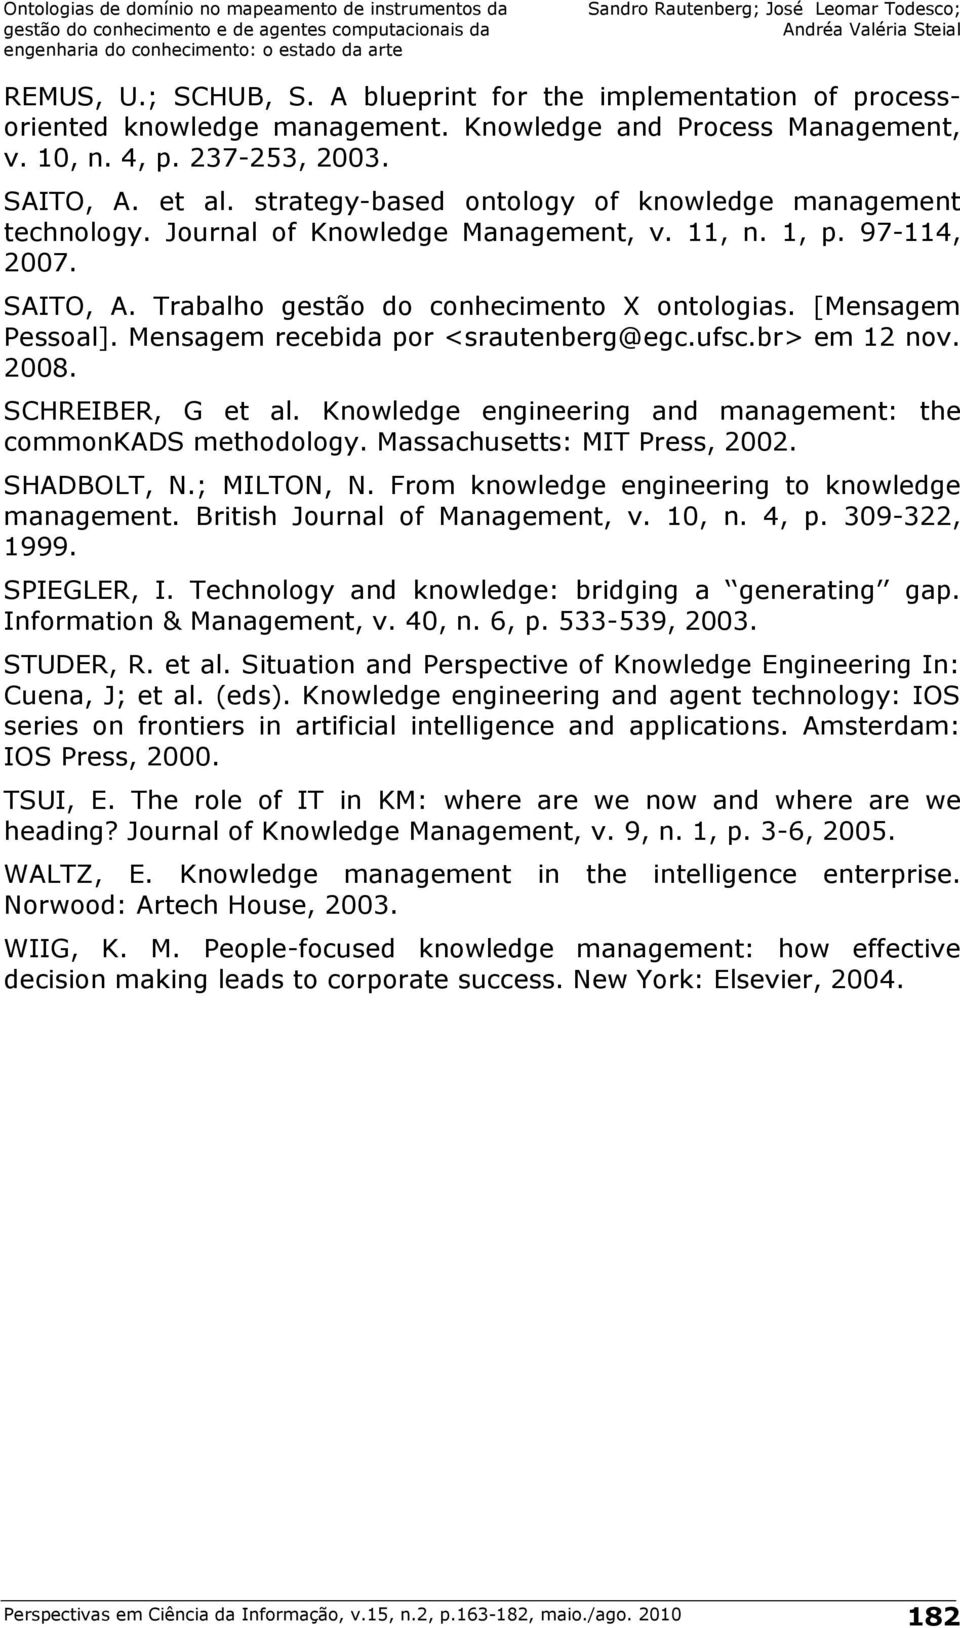 Mensagem recebida por <srautenberg@egc.ufsc.br> em 12 nov. 2008. SCHREIBER, G et al. Knowledge engineering and management: the commonkads methodology. Massachusetts: MIT Press, 2002. SHADBOLT, N.